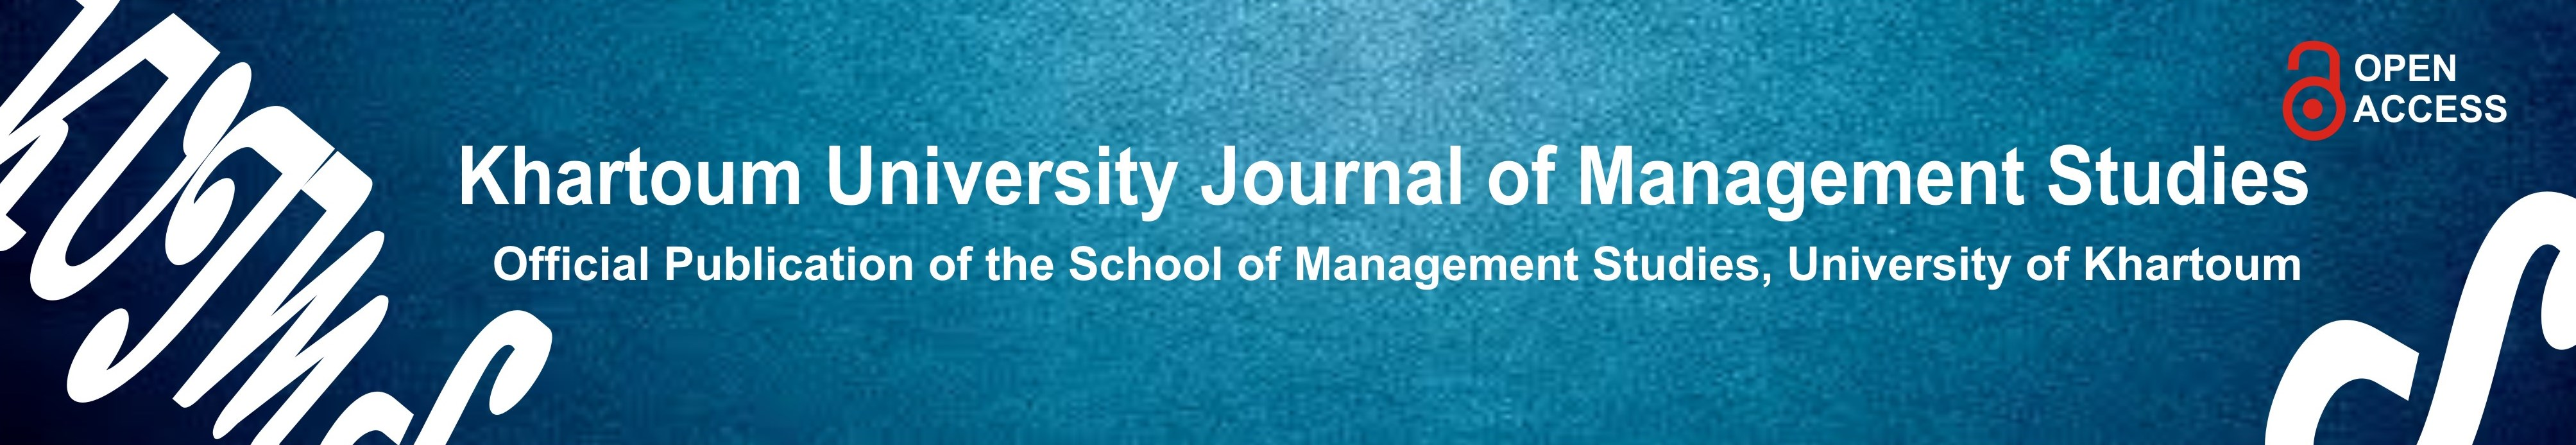 Khartoum University Journal of Management Studies